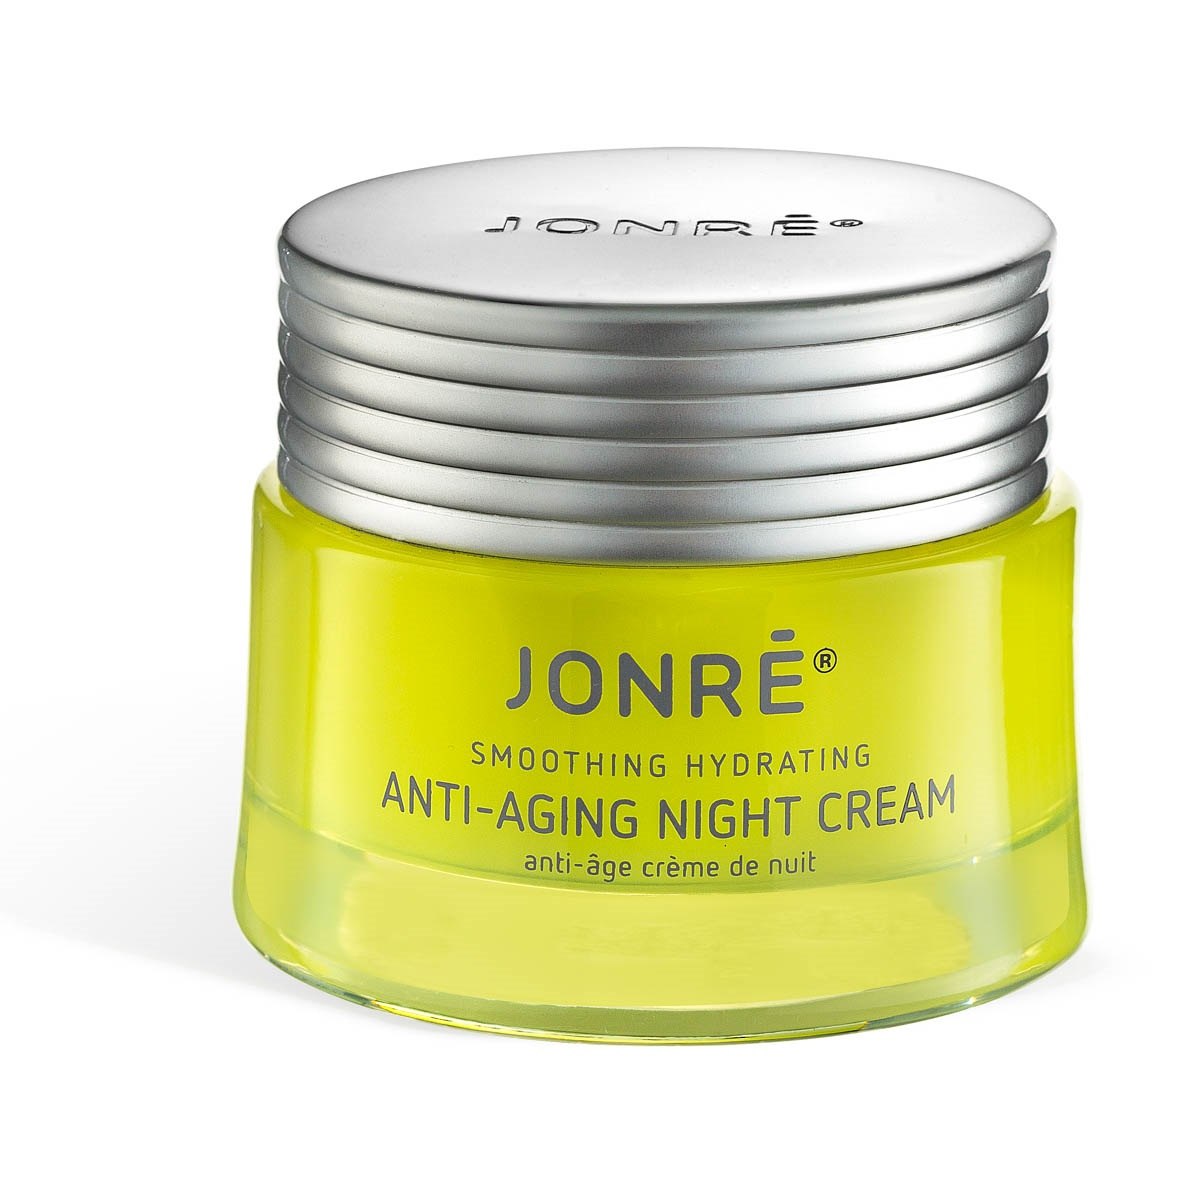 Jonre Anti-Aging and Wrinkle Reducing Night Cream Face Moisturizer , 1.7oz (Dry Skin)